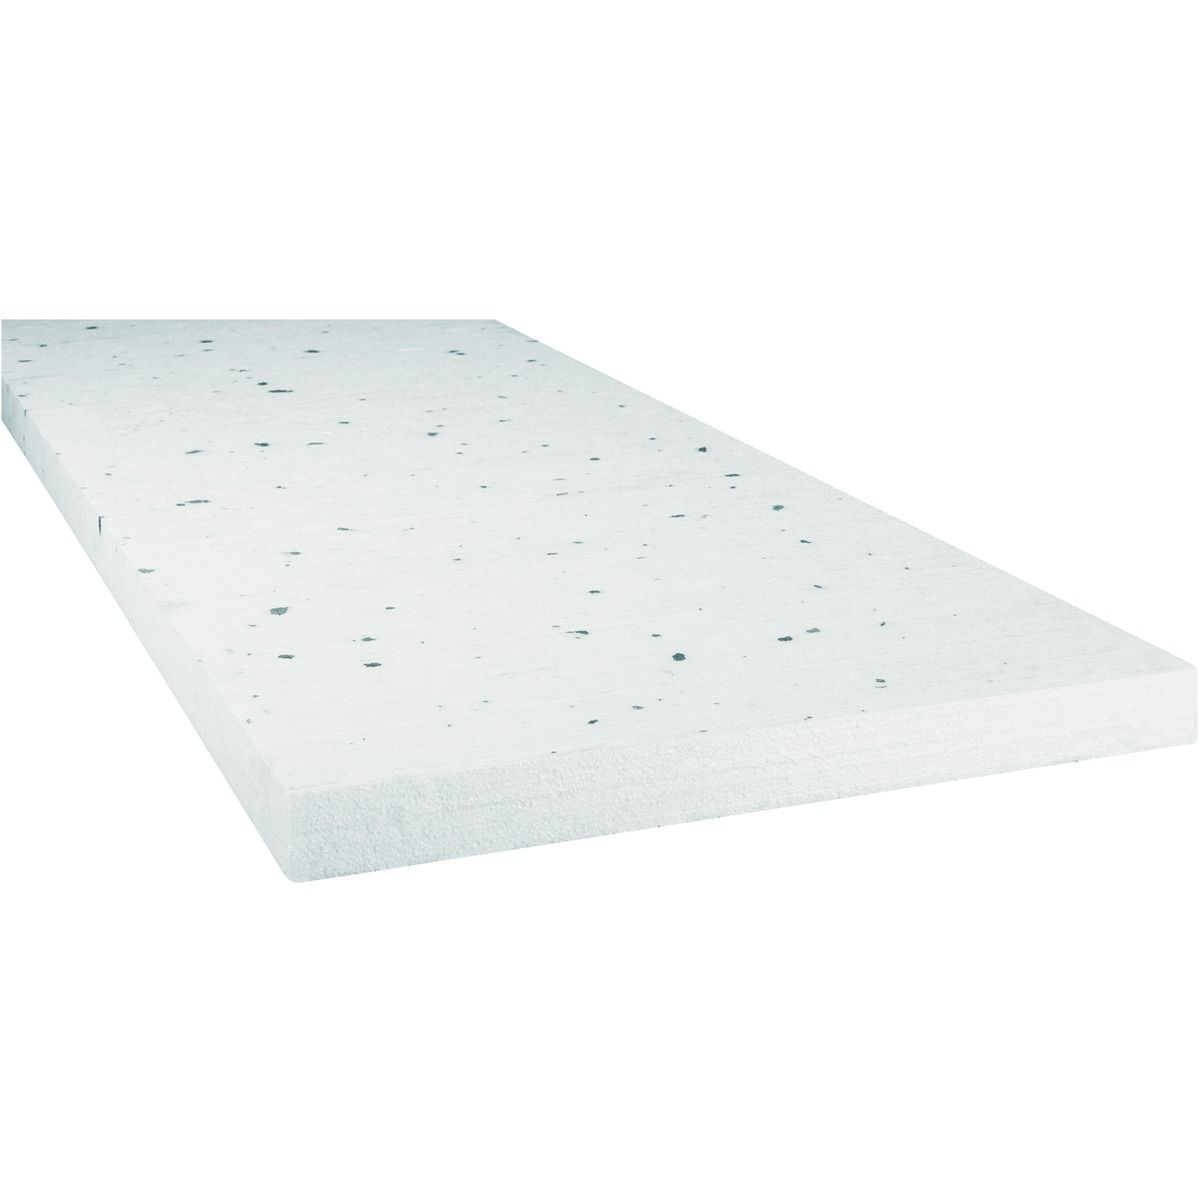 Compare prices for Kay Metzeler General Purpose Polystyrene EPS70 - 2400mm x 1200mm x 75mm